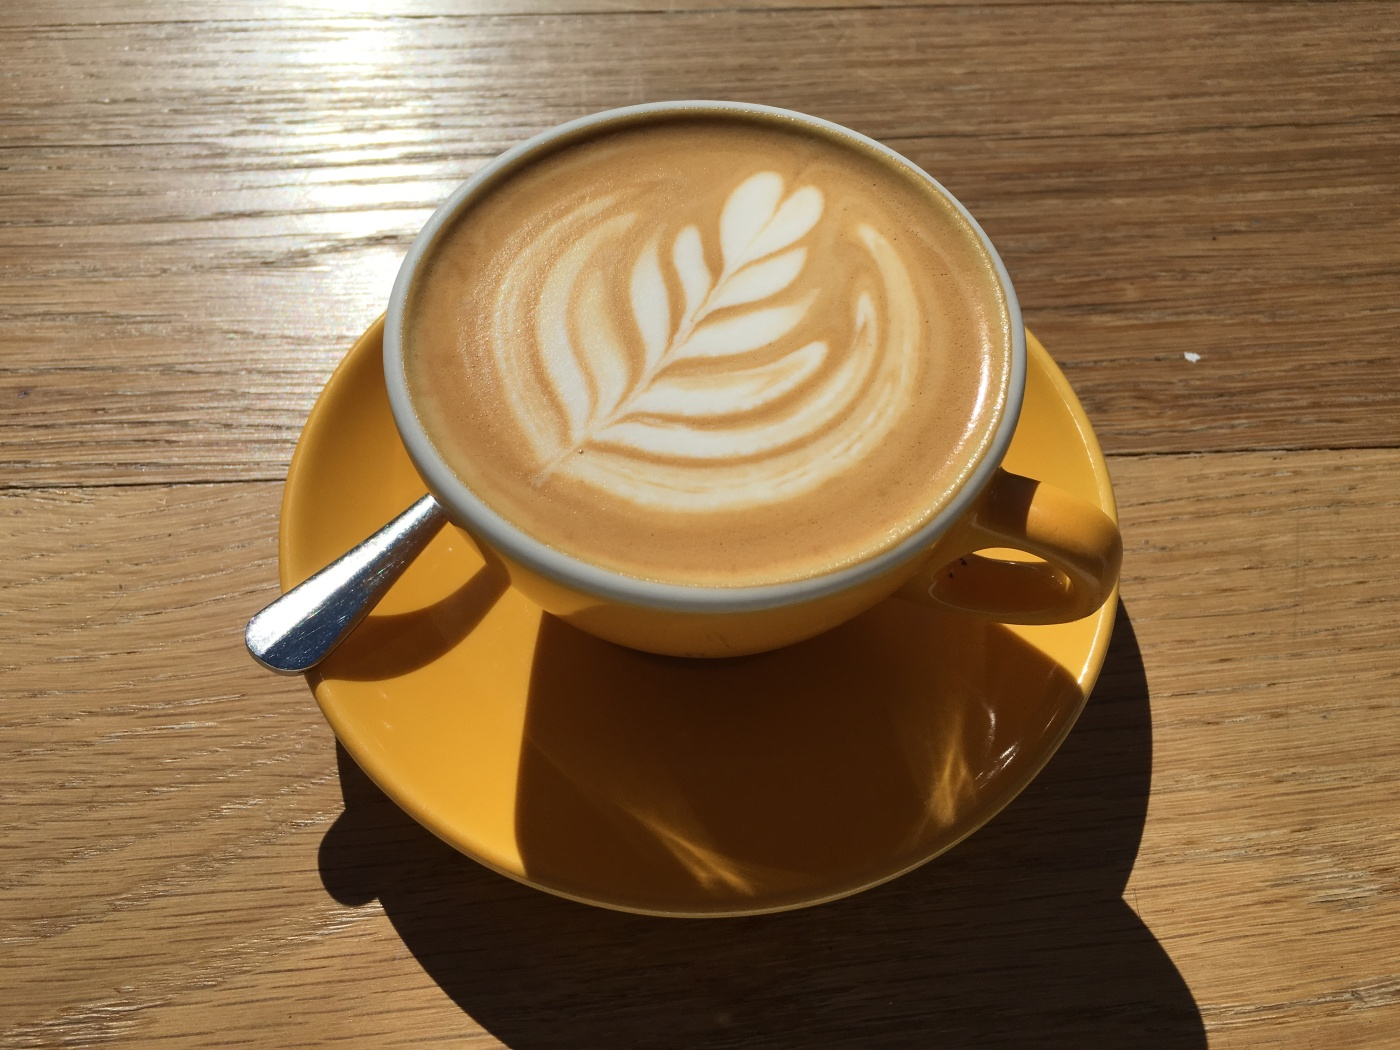 Craft Coffee - Artificer Specialty Coffee Bar & Roastery in Surry Hills Near Sydney, Australia